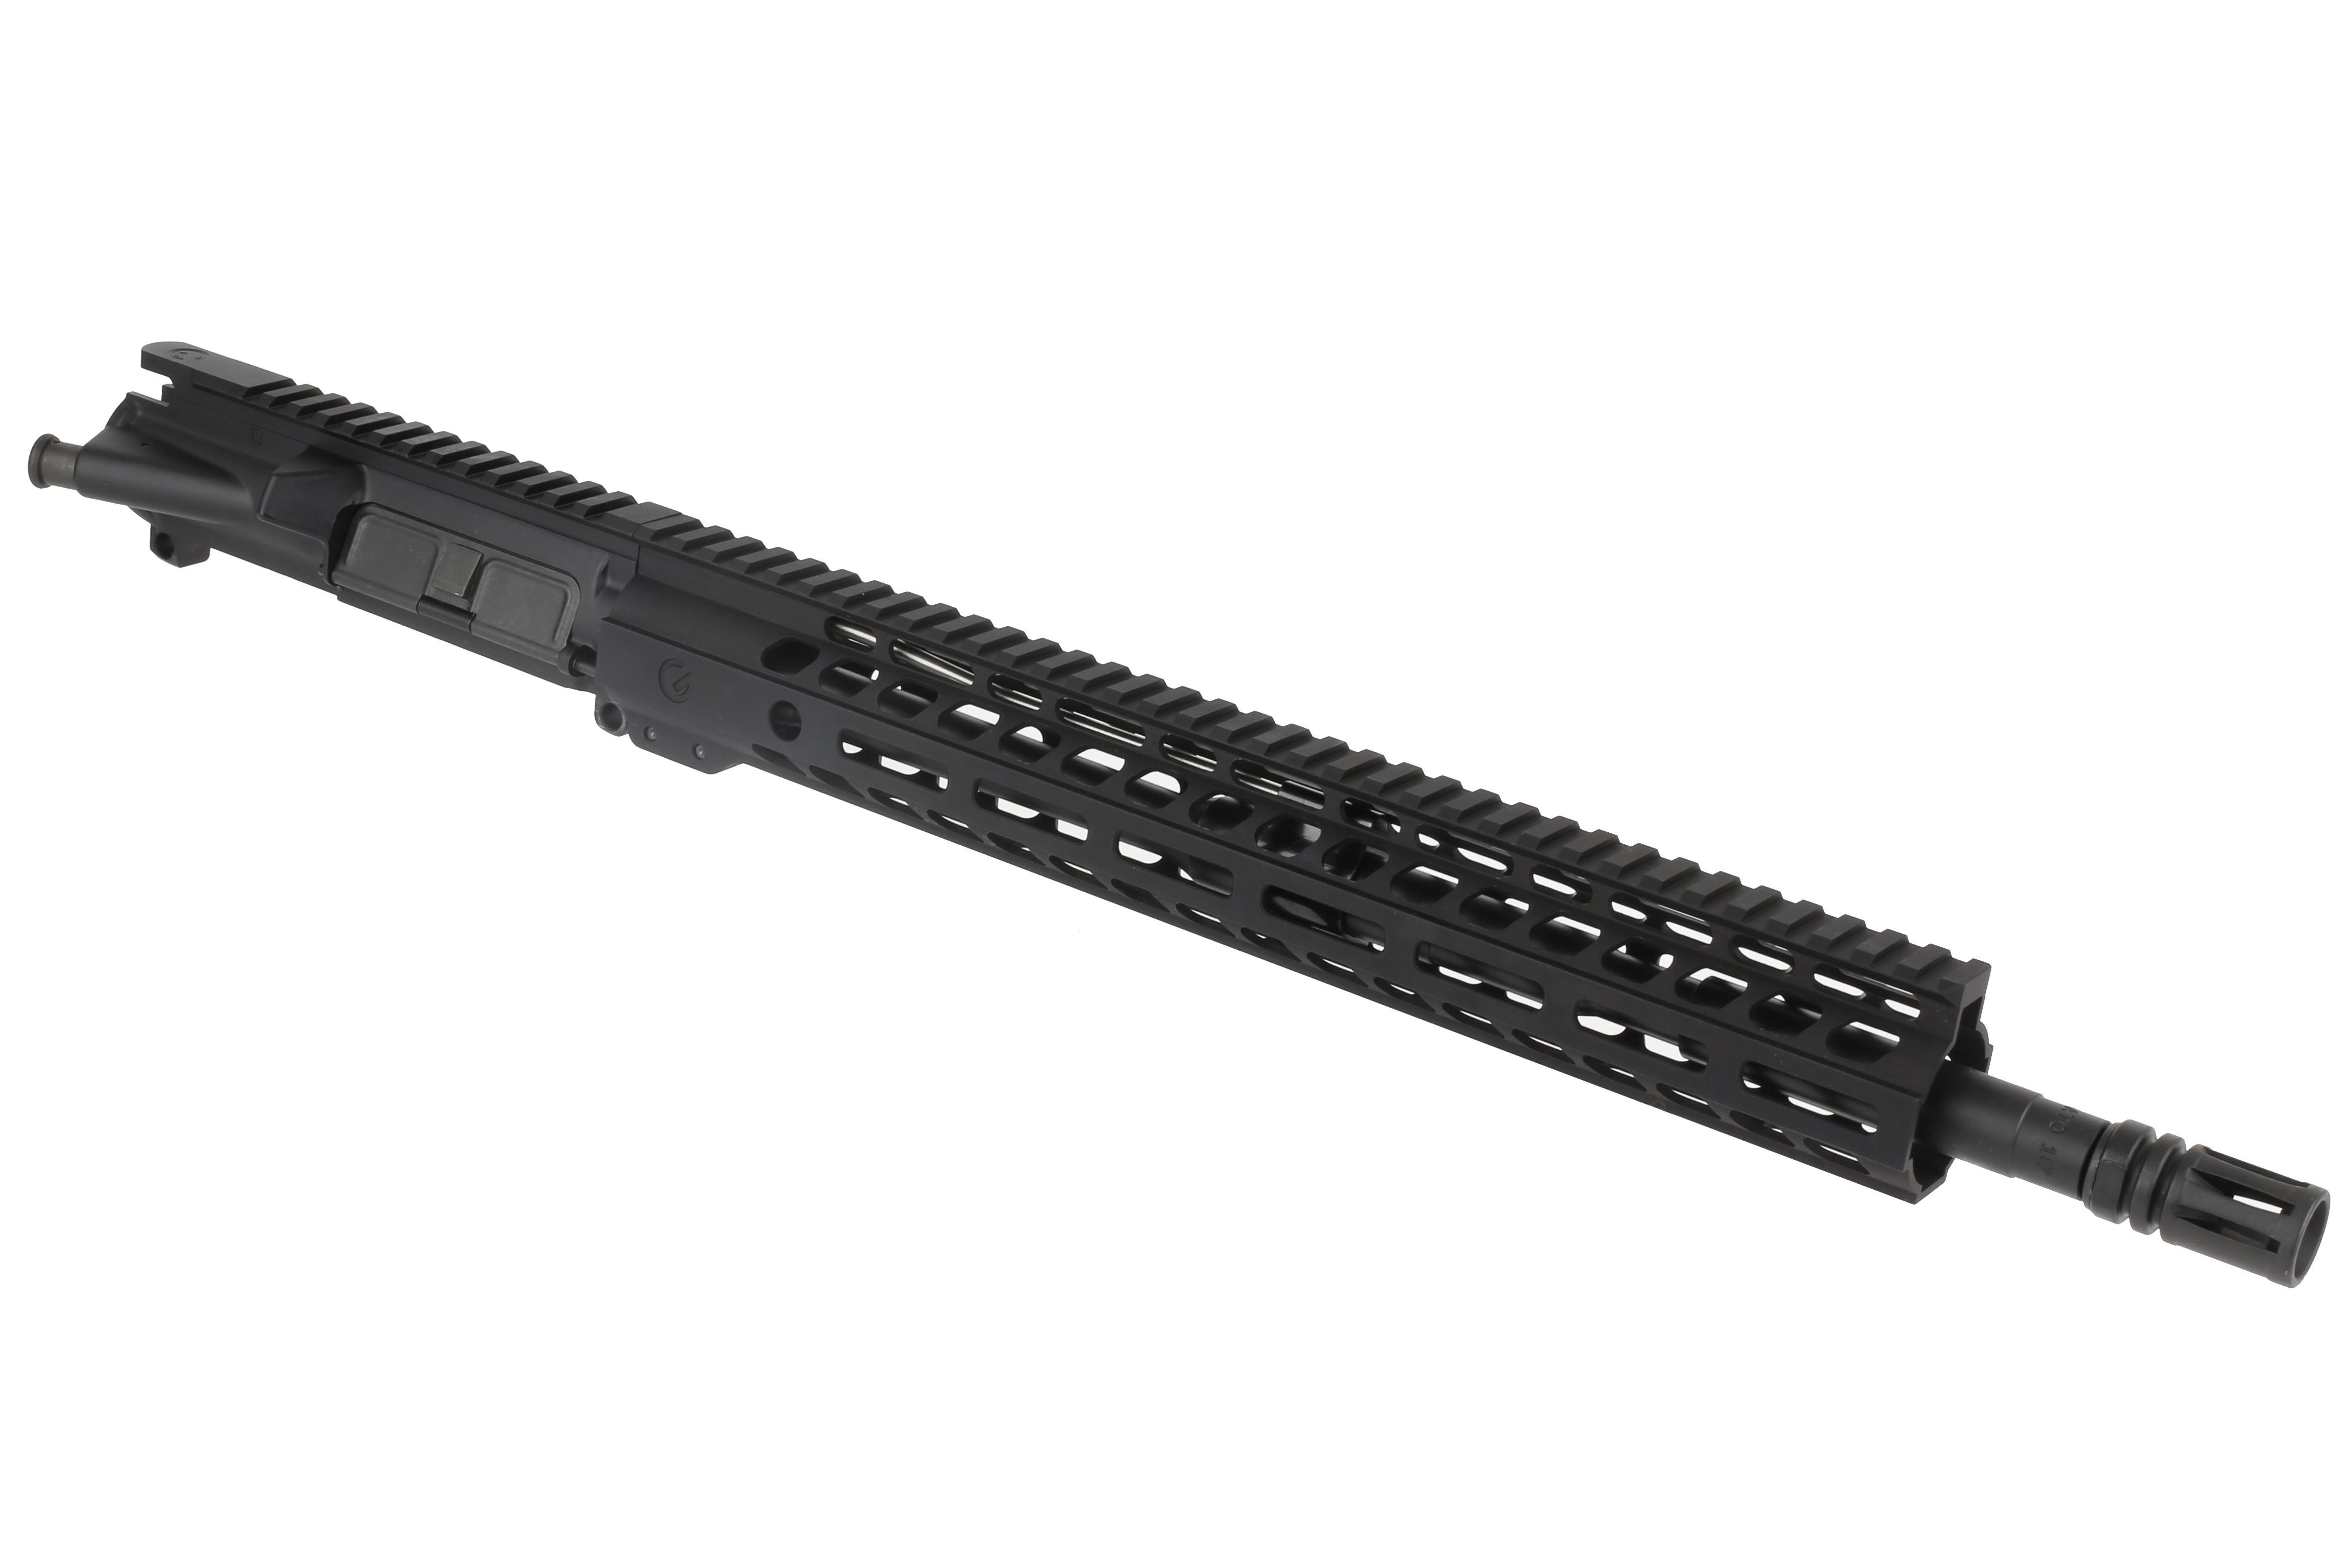 The ghost firearms ar15 barreled upper receiver kit comes fully assembled with a barrel, handguard, and parts kit